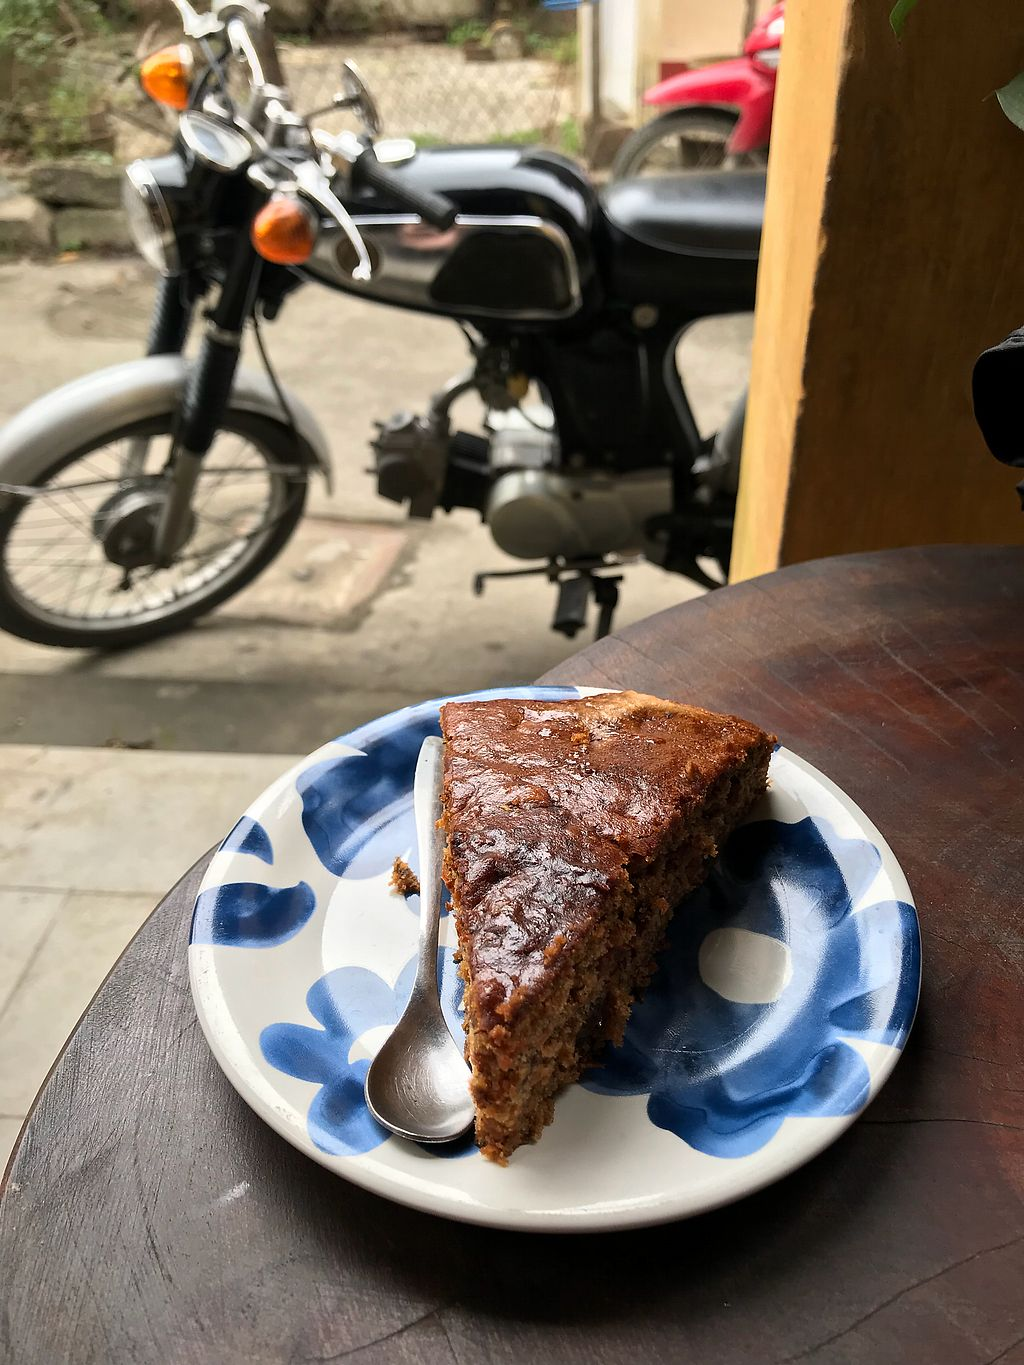 """Photo of Rosie's Cafe  by <a href=""""/members/profile/vegetariangirl"""">vegetariangirl</a> <br/>Vegan carrot cake <br/> January 20, 2018  - <a href='/contact/abuse/image/77938/348754'>Report</a>"""